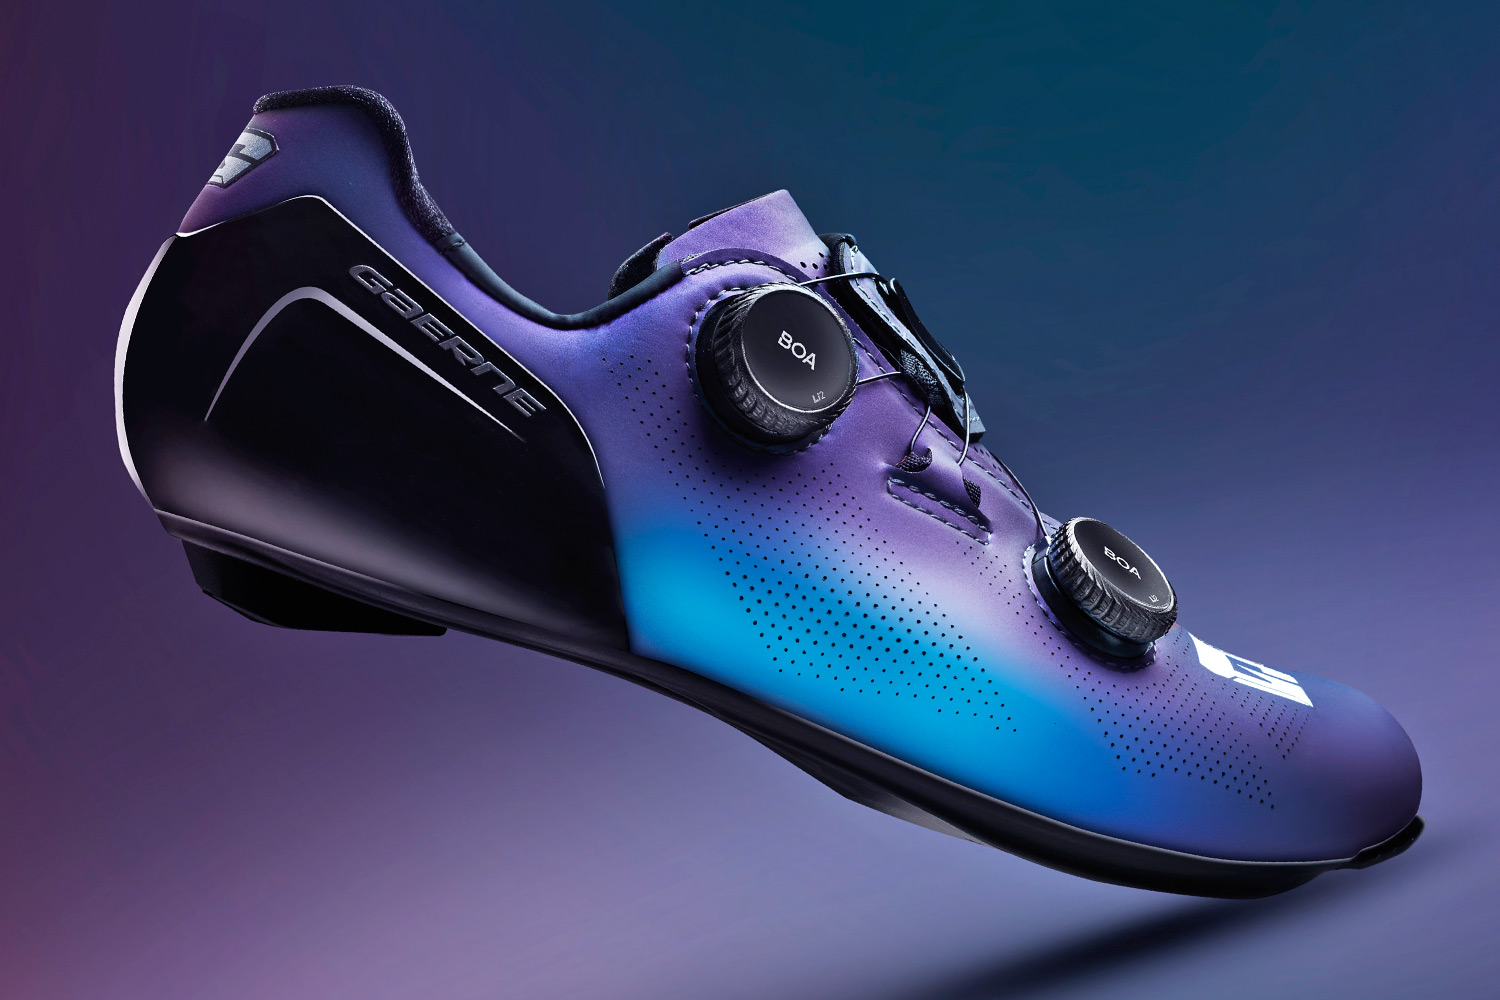 Gaerne G.STL road shoes, top-tier made-in-Italy performance carbon road race bike shoe, Iridium iridescent purple